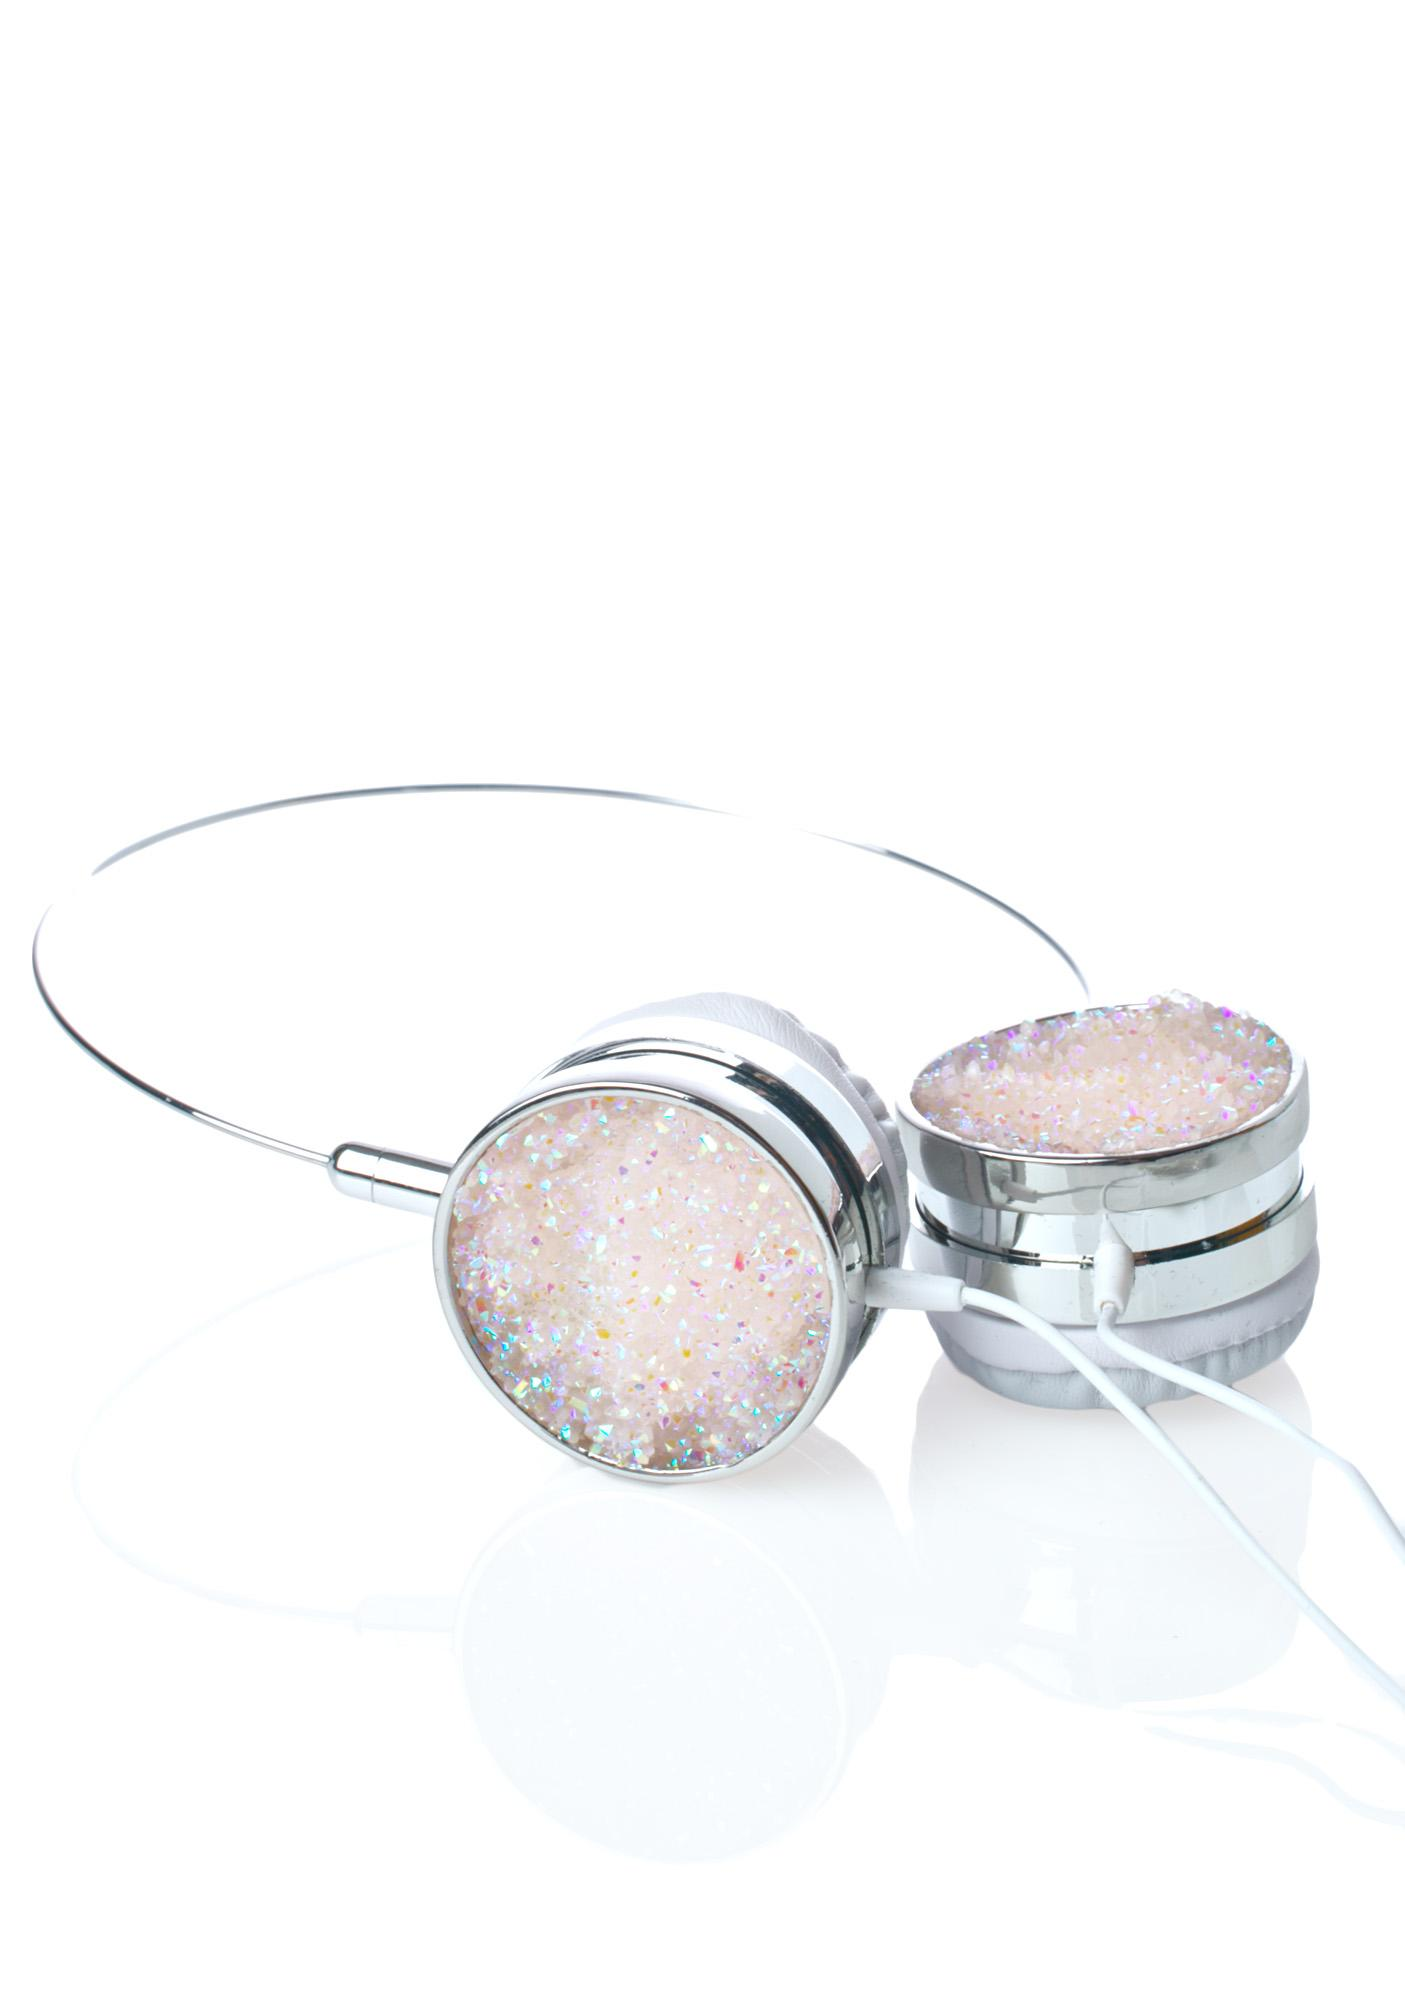 Skinnydip Quartz Headphones